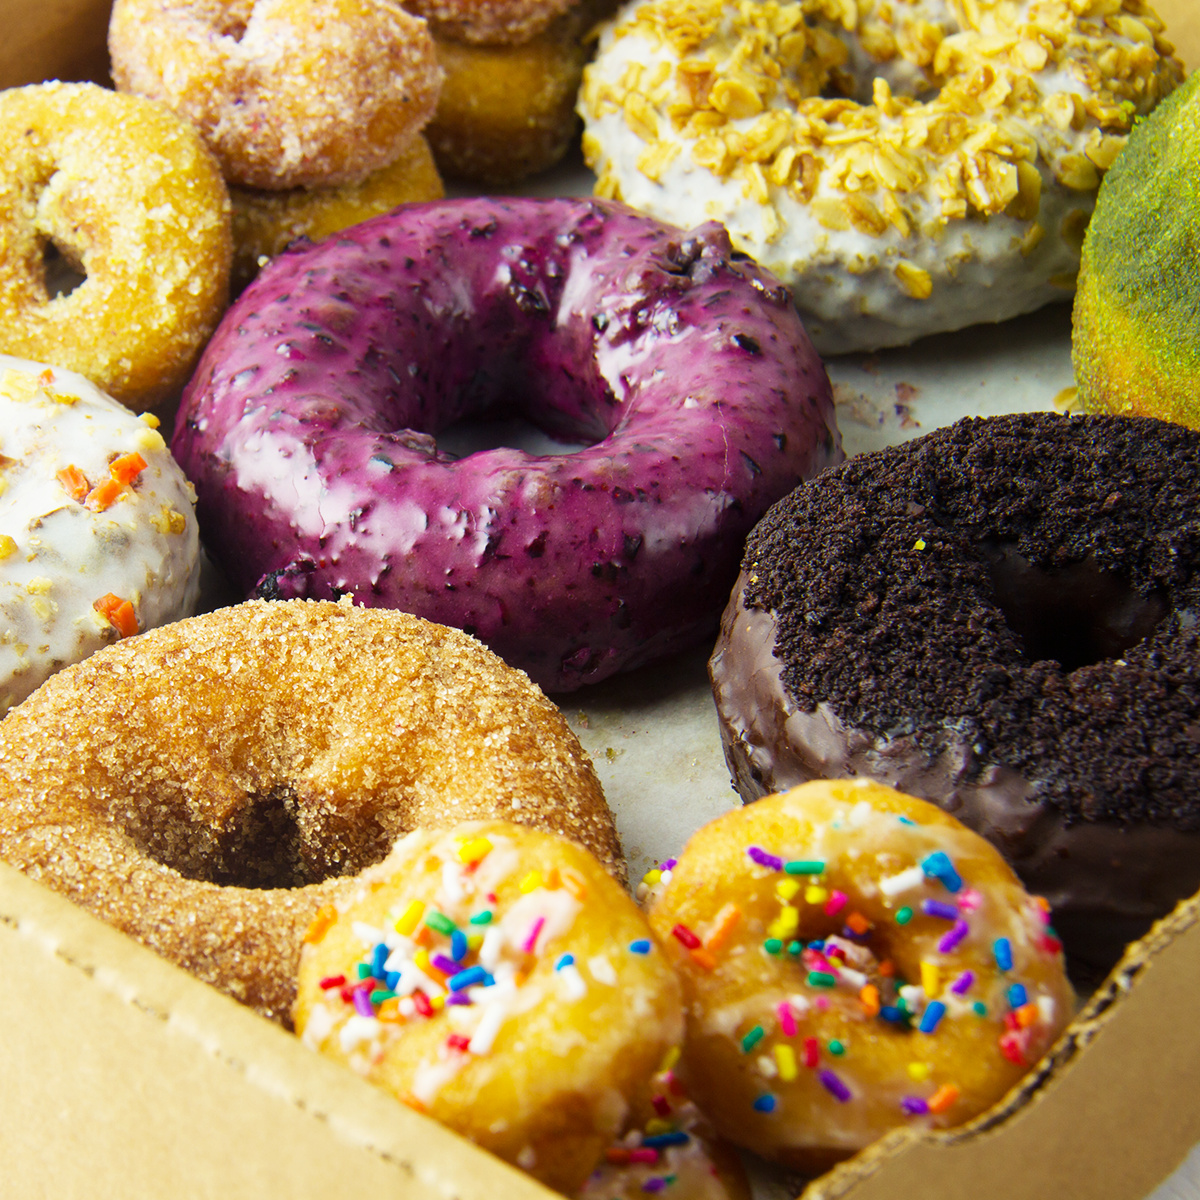 GH_June_B1_FB_Donuts_All_v3-2.png